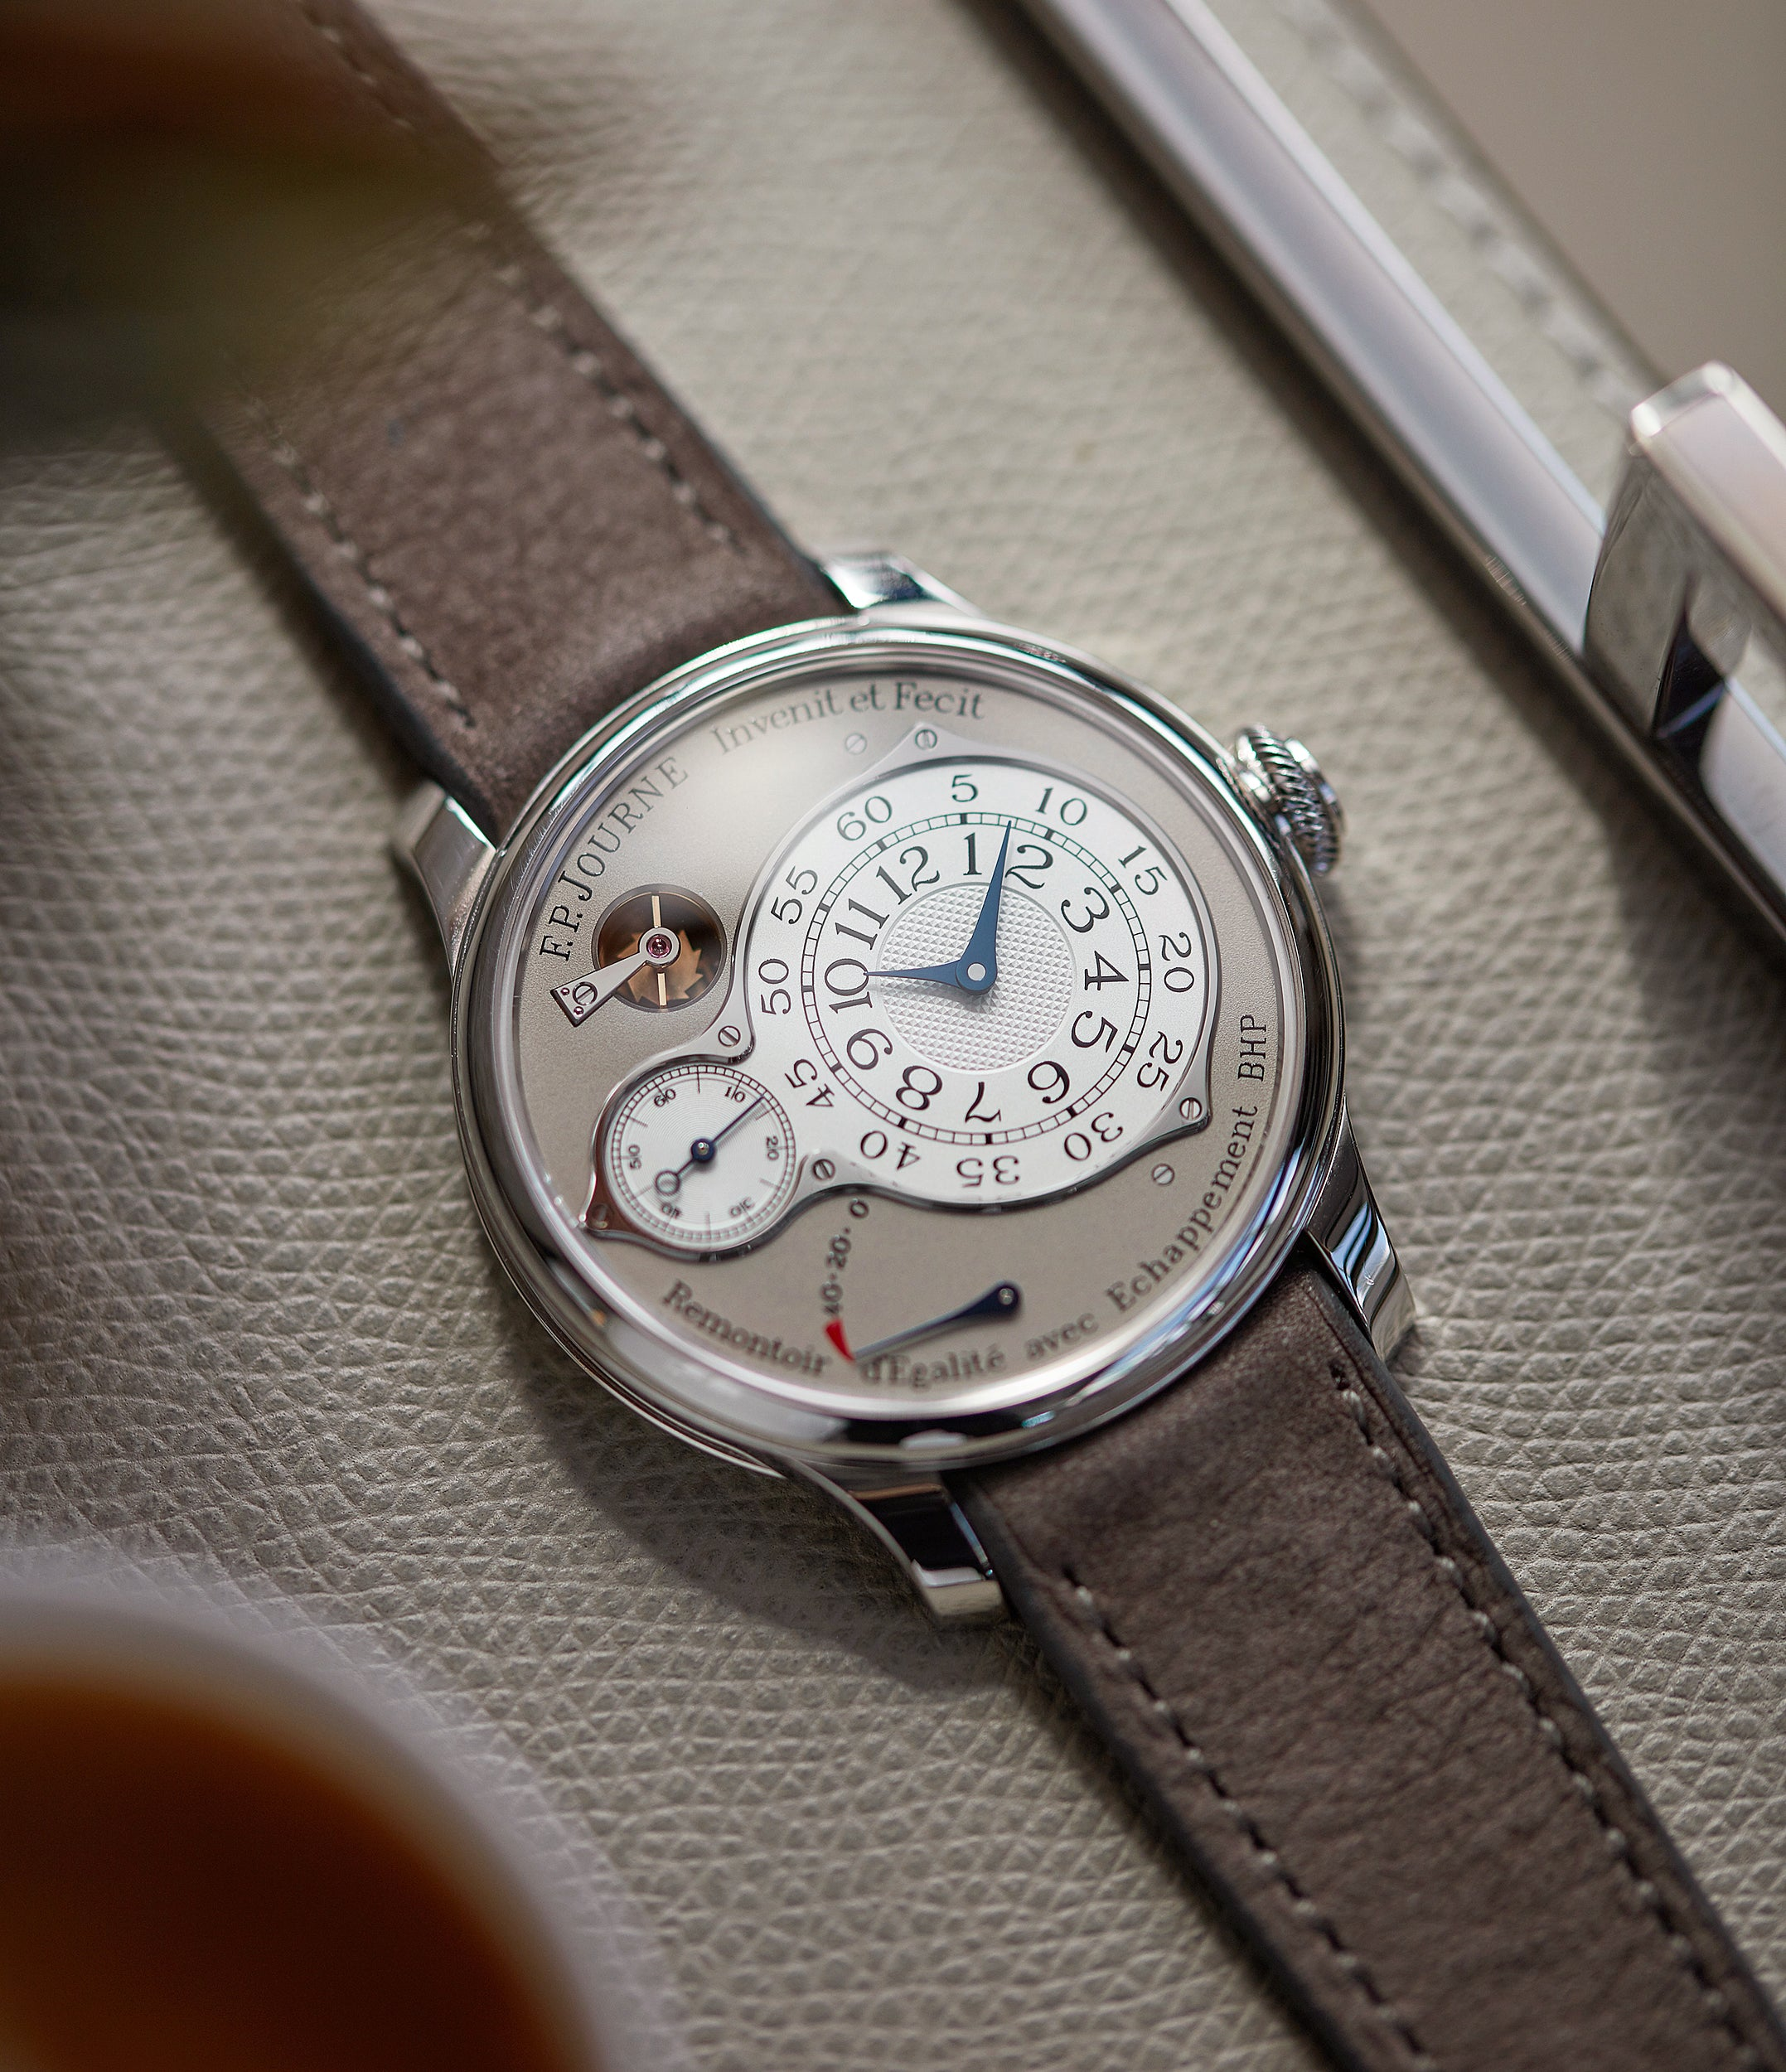 in-depth F. P. Journe Chronometre Optimum grey dial time-only dress watch for sale online at A Collected Man London UK specilalist of independent watchmakers